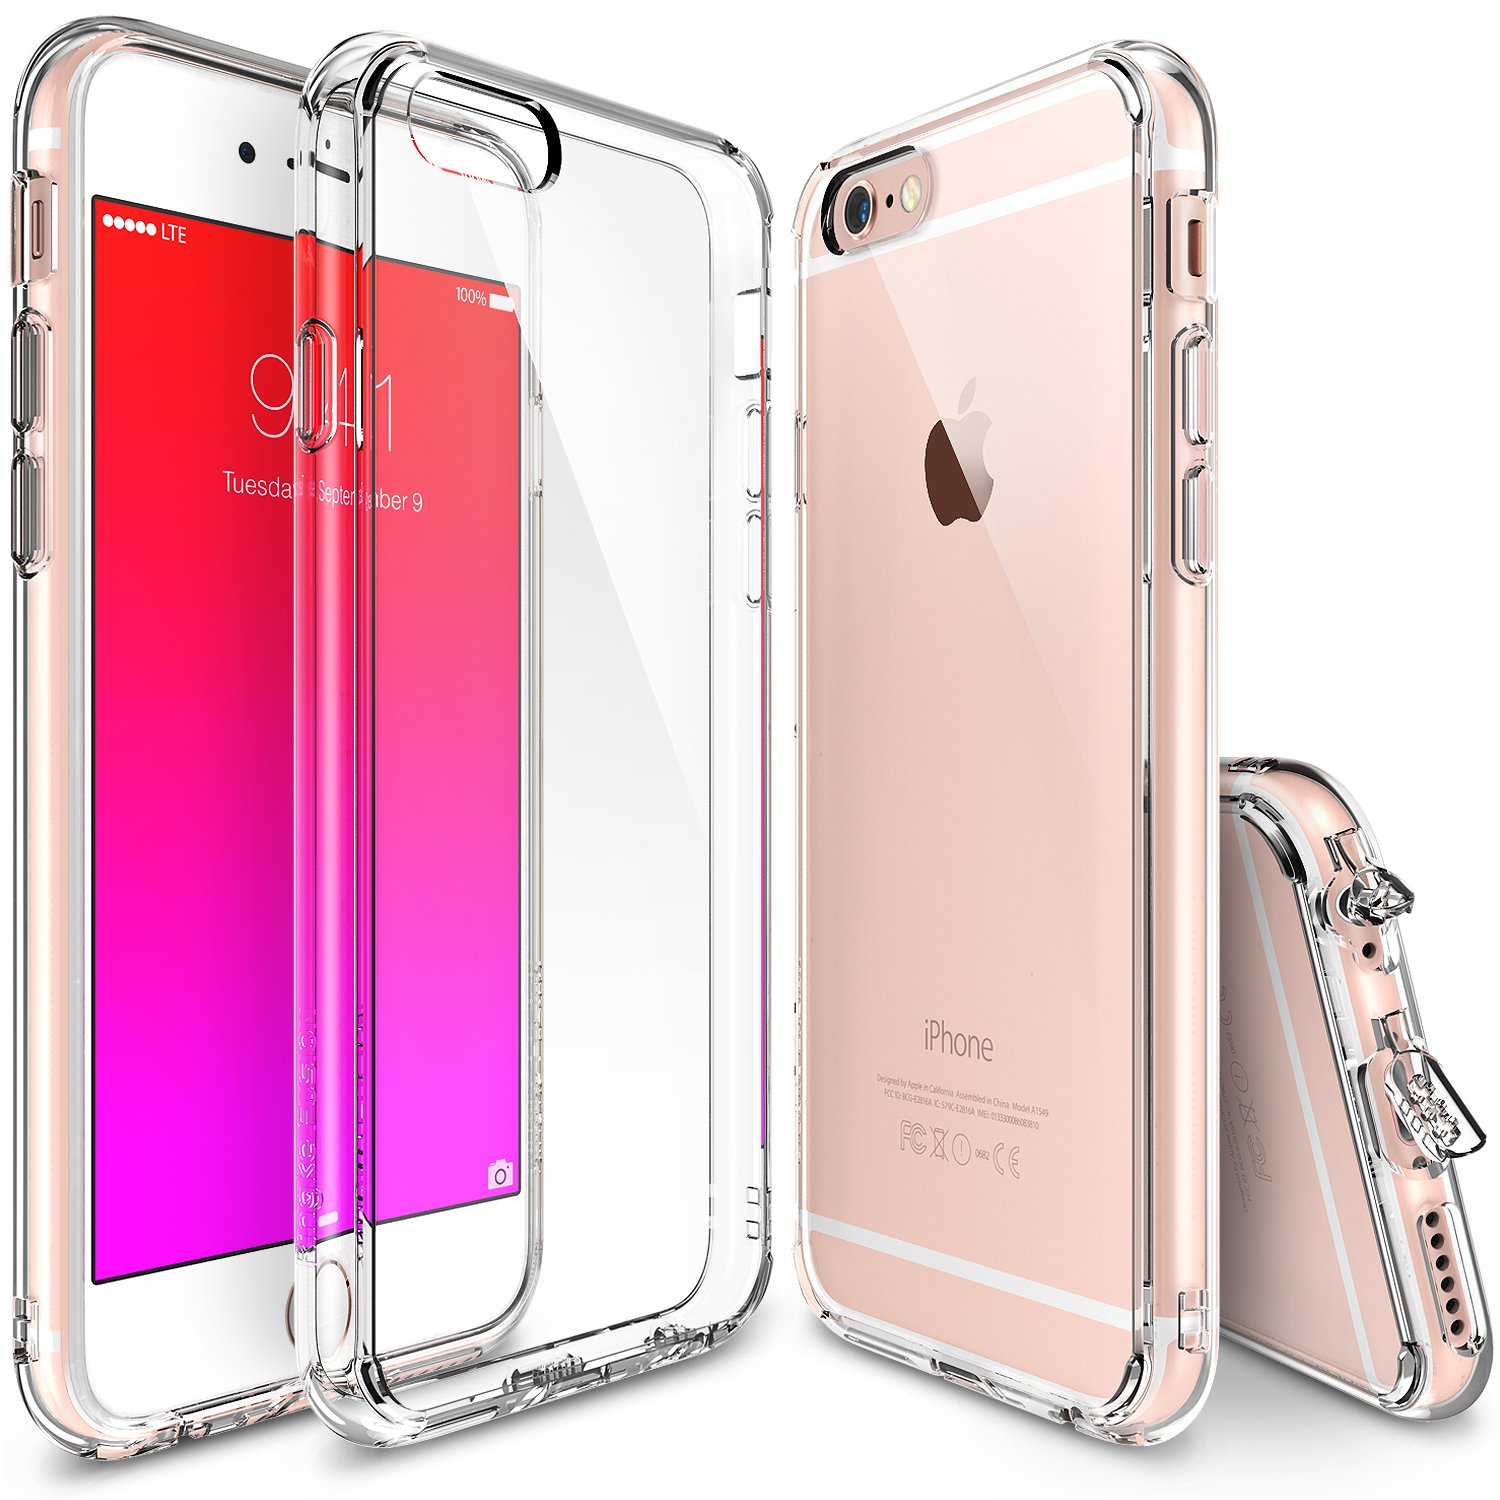 iPhone 6S 4.7'' Case, Ringke FUSION ** Shock Absorption Technology**(FREE Screen Protector)(CRYSTAl VIEW) Crystal Clear PC Back Drop Protection TPU Bumper Case for Apple iPhone 6 (2014) / 6S (2015)